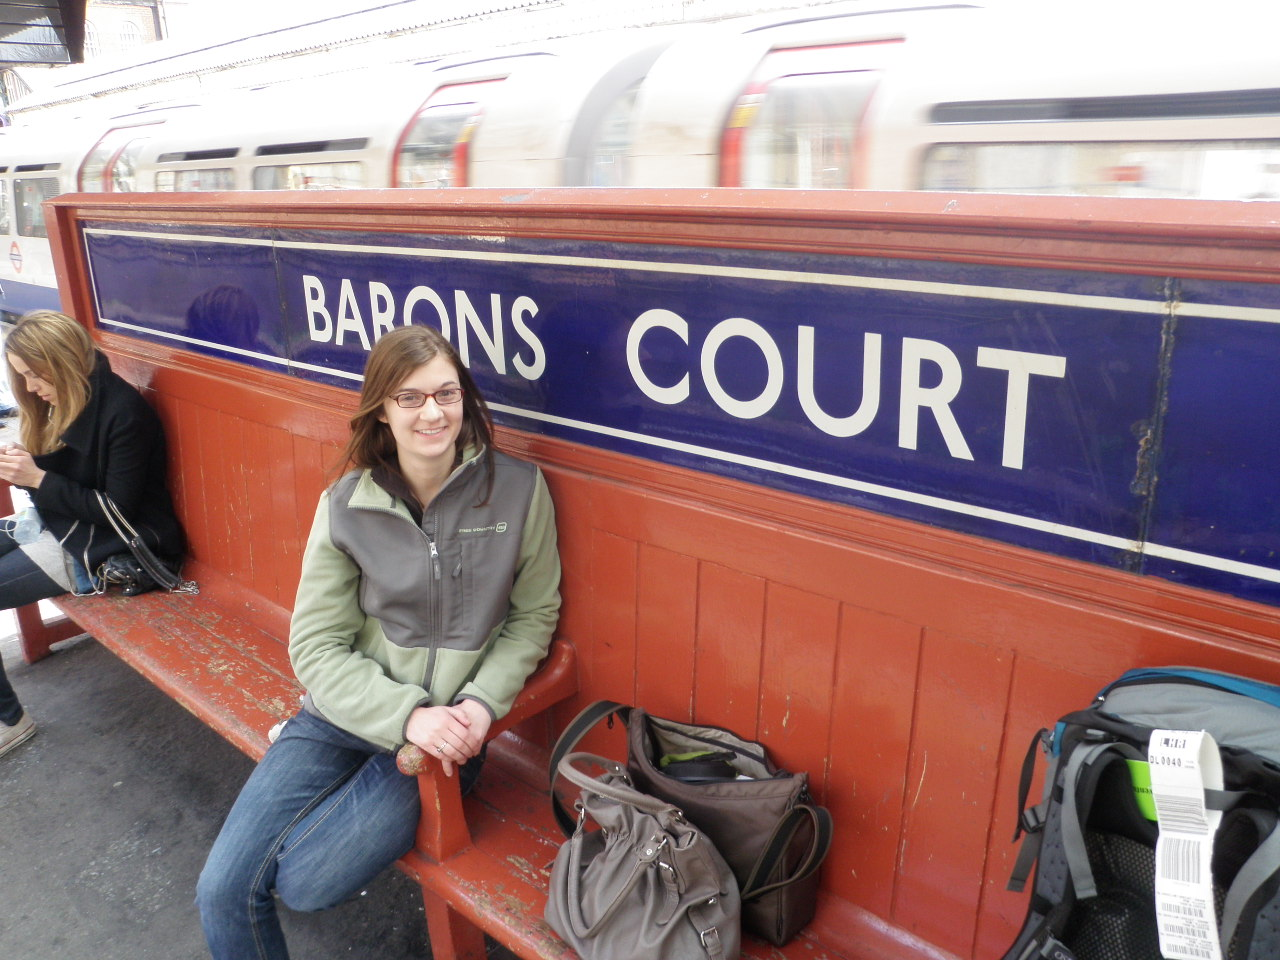 Heather at Barons Court